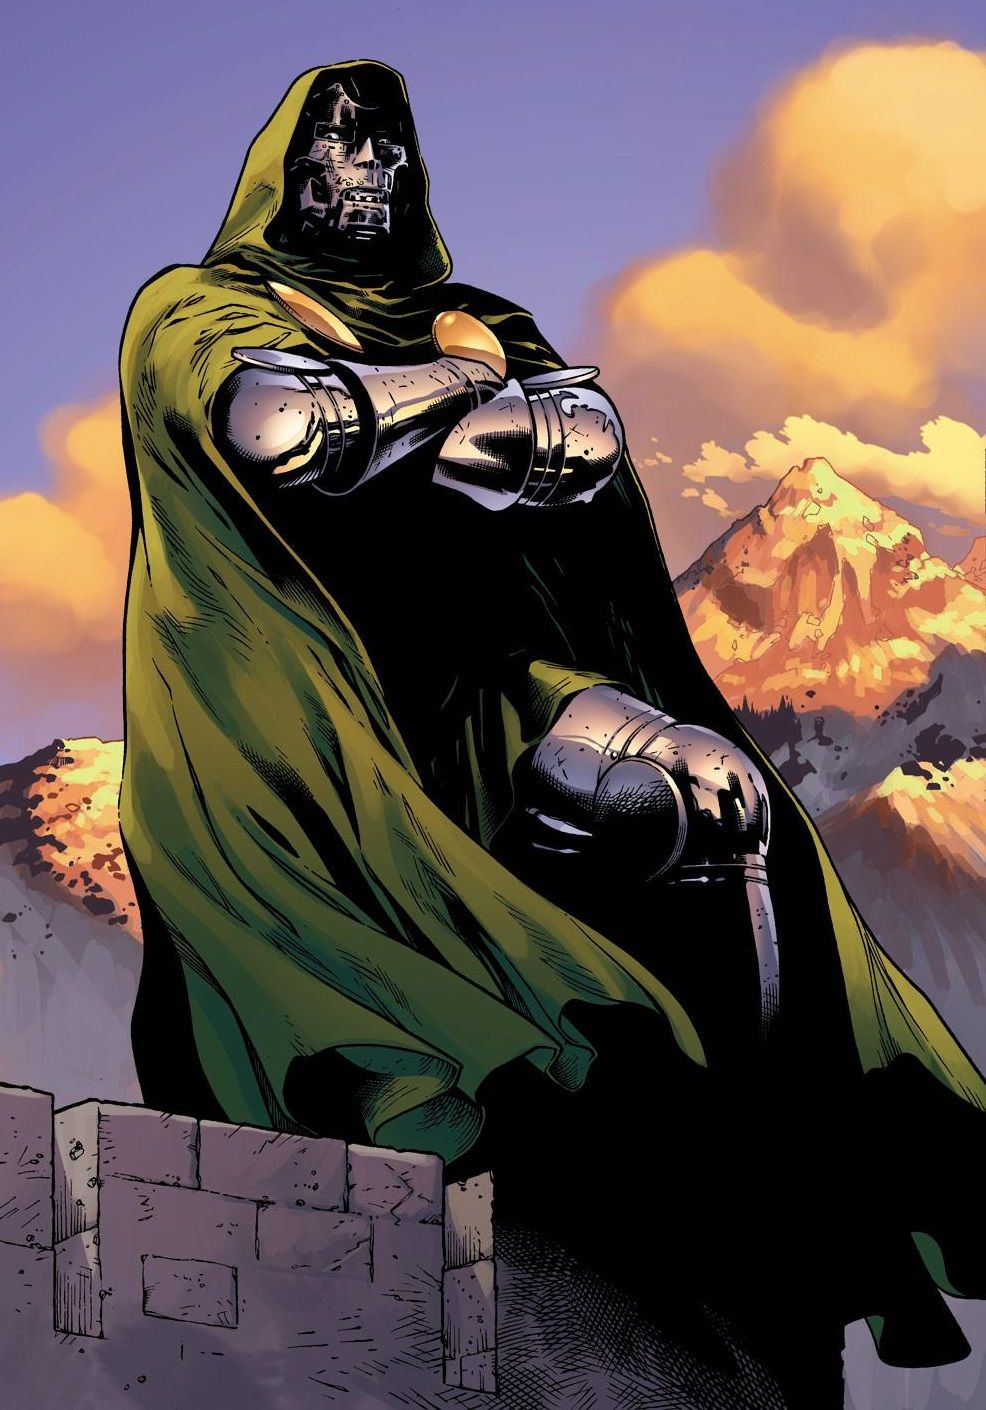 http://cdn.collider.com/wp-content/uploads/doctor-doom.jpg